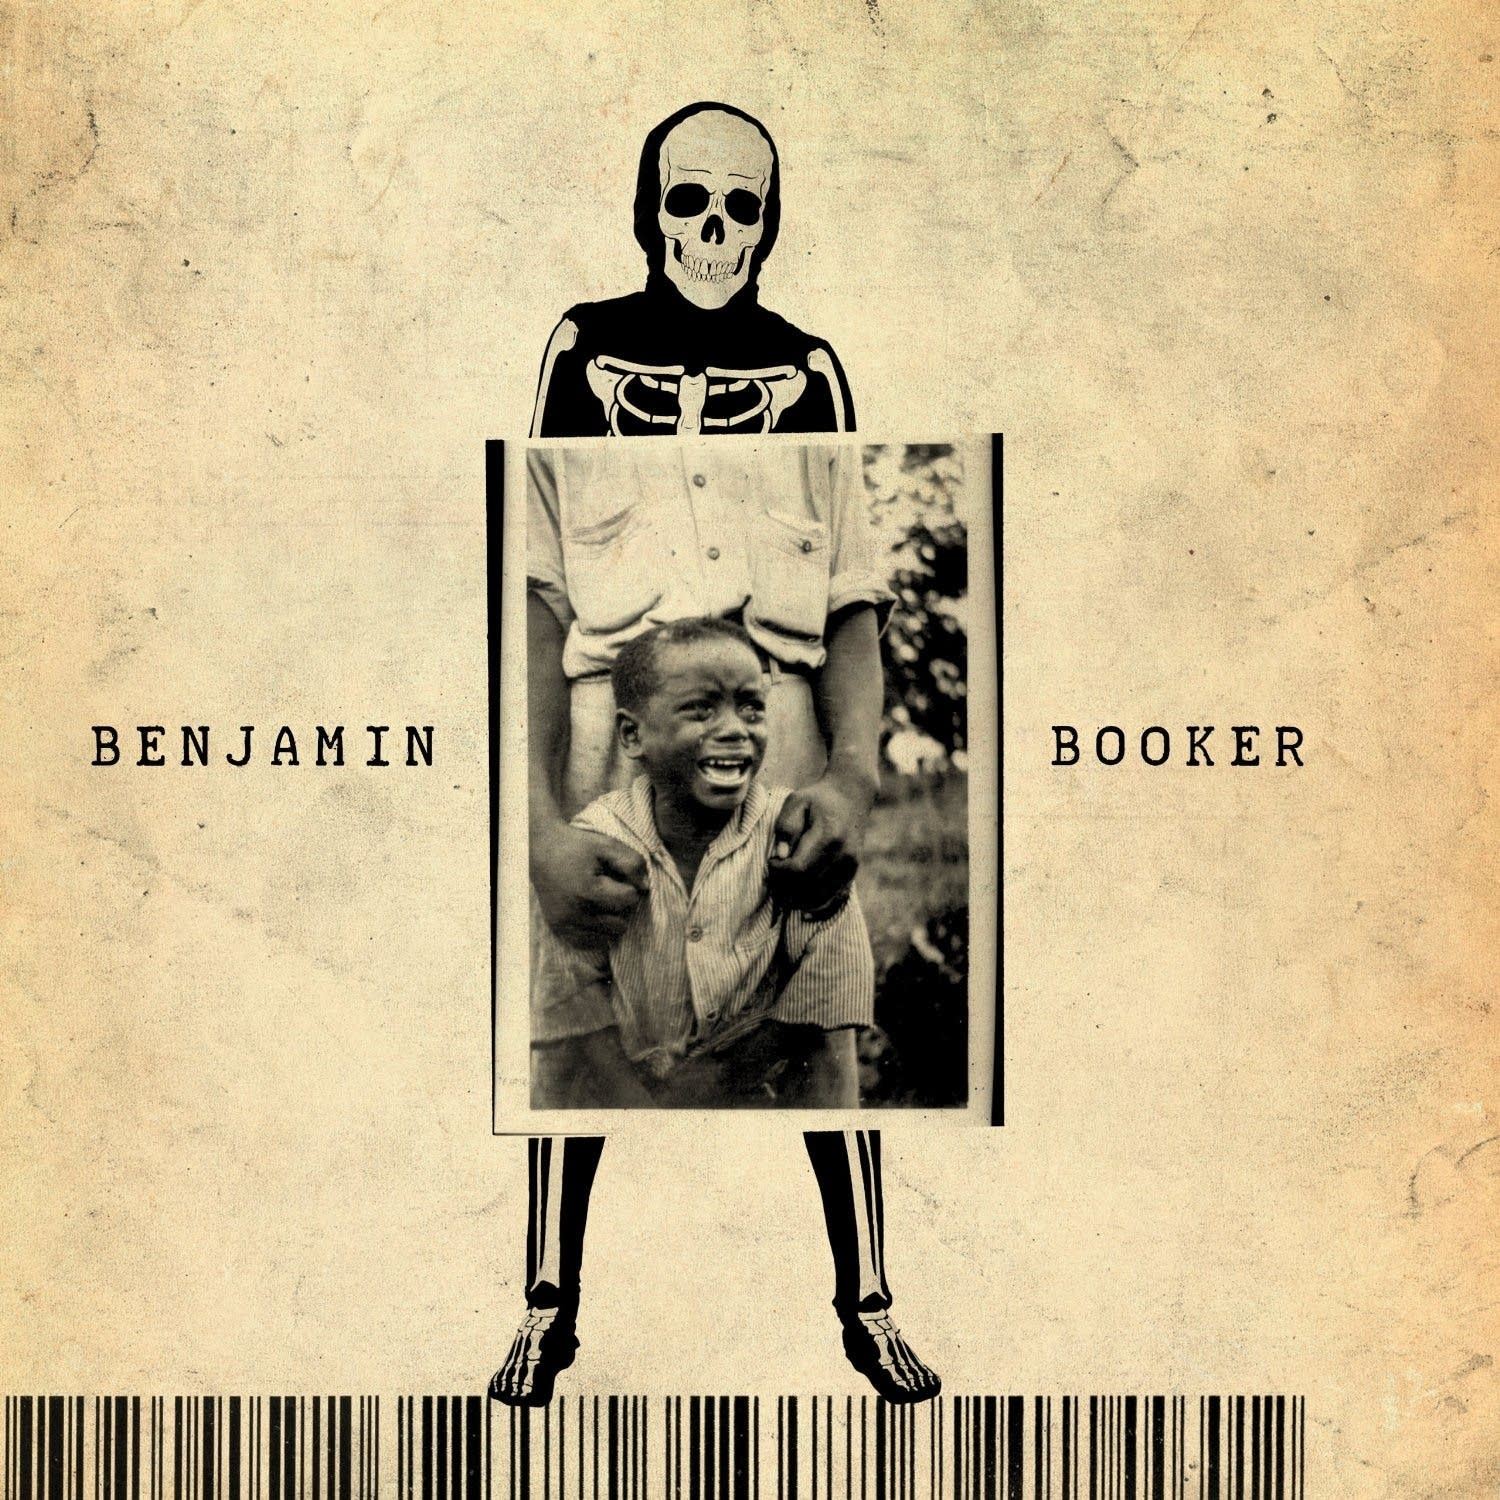 bejamin booker self-titled debut full length